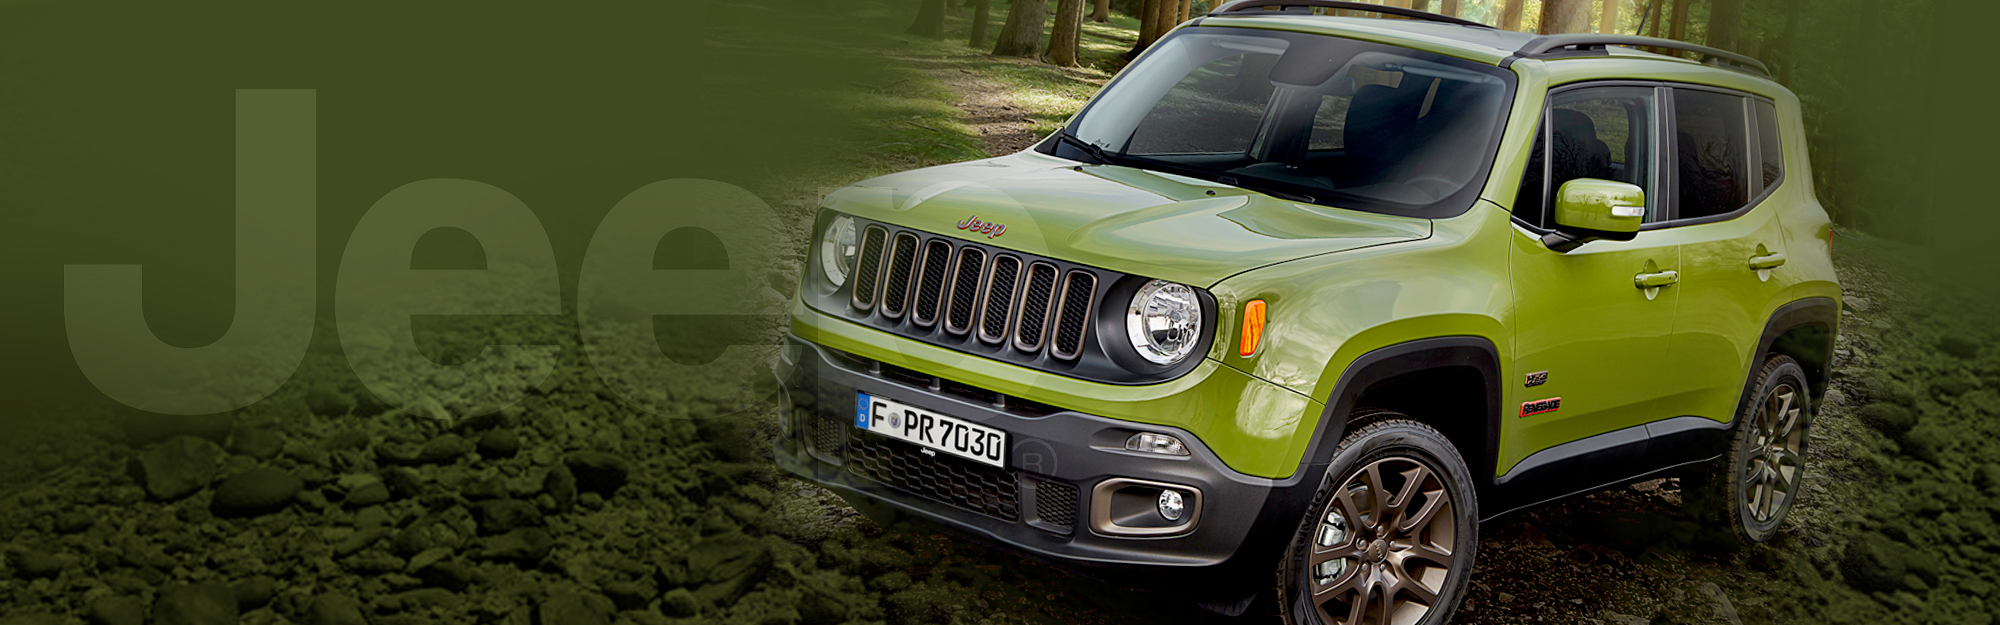 Autohaus Neumann - Jeep Renegade 75thVersion